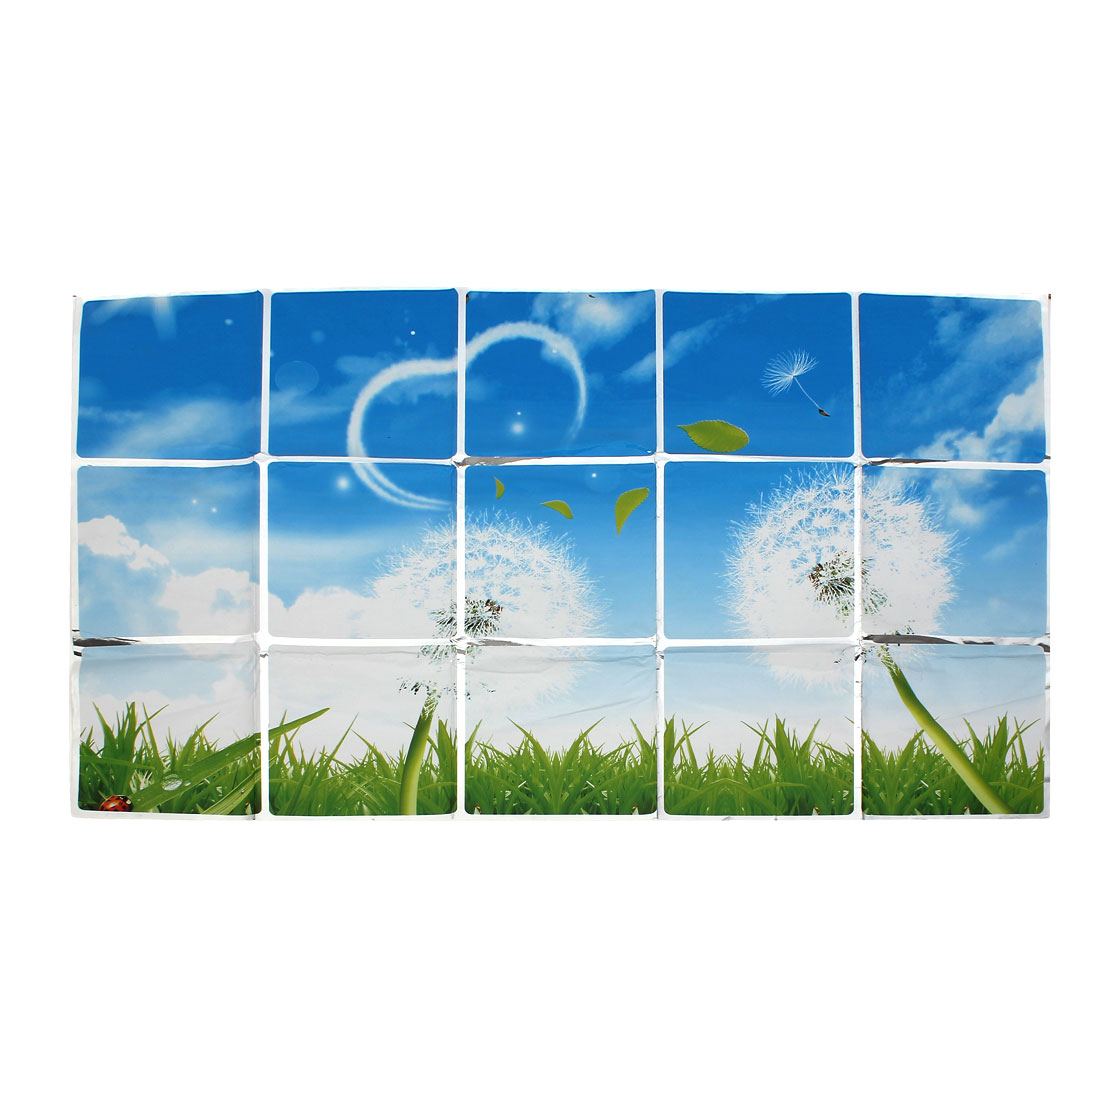 White Green Plastic Grass Pattern Kitchen Sheet Dining Hall Wall Sticker Decal Ornamnet